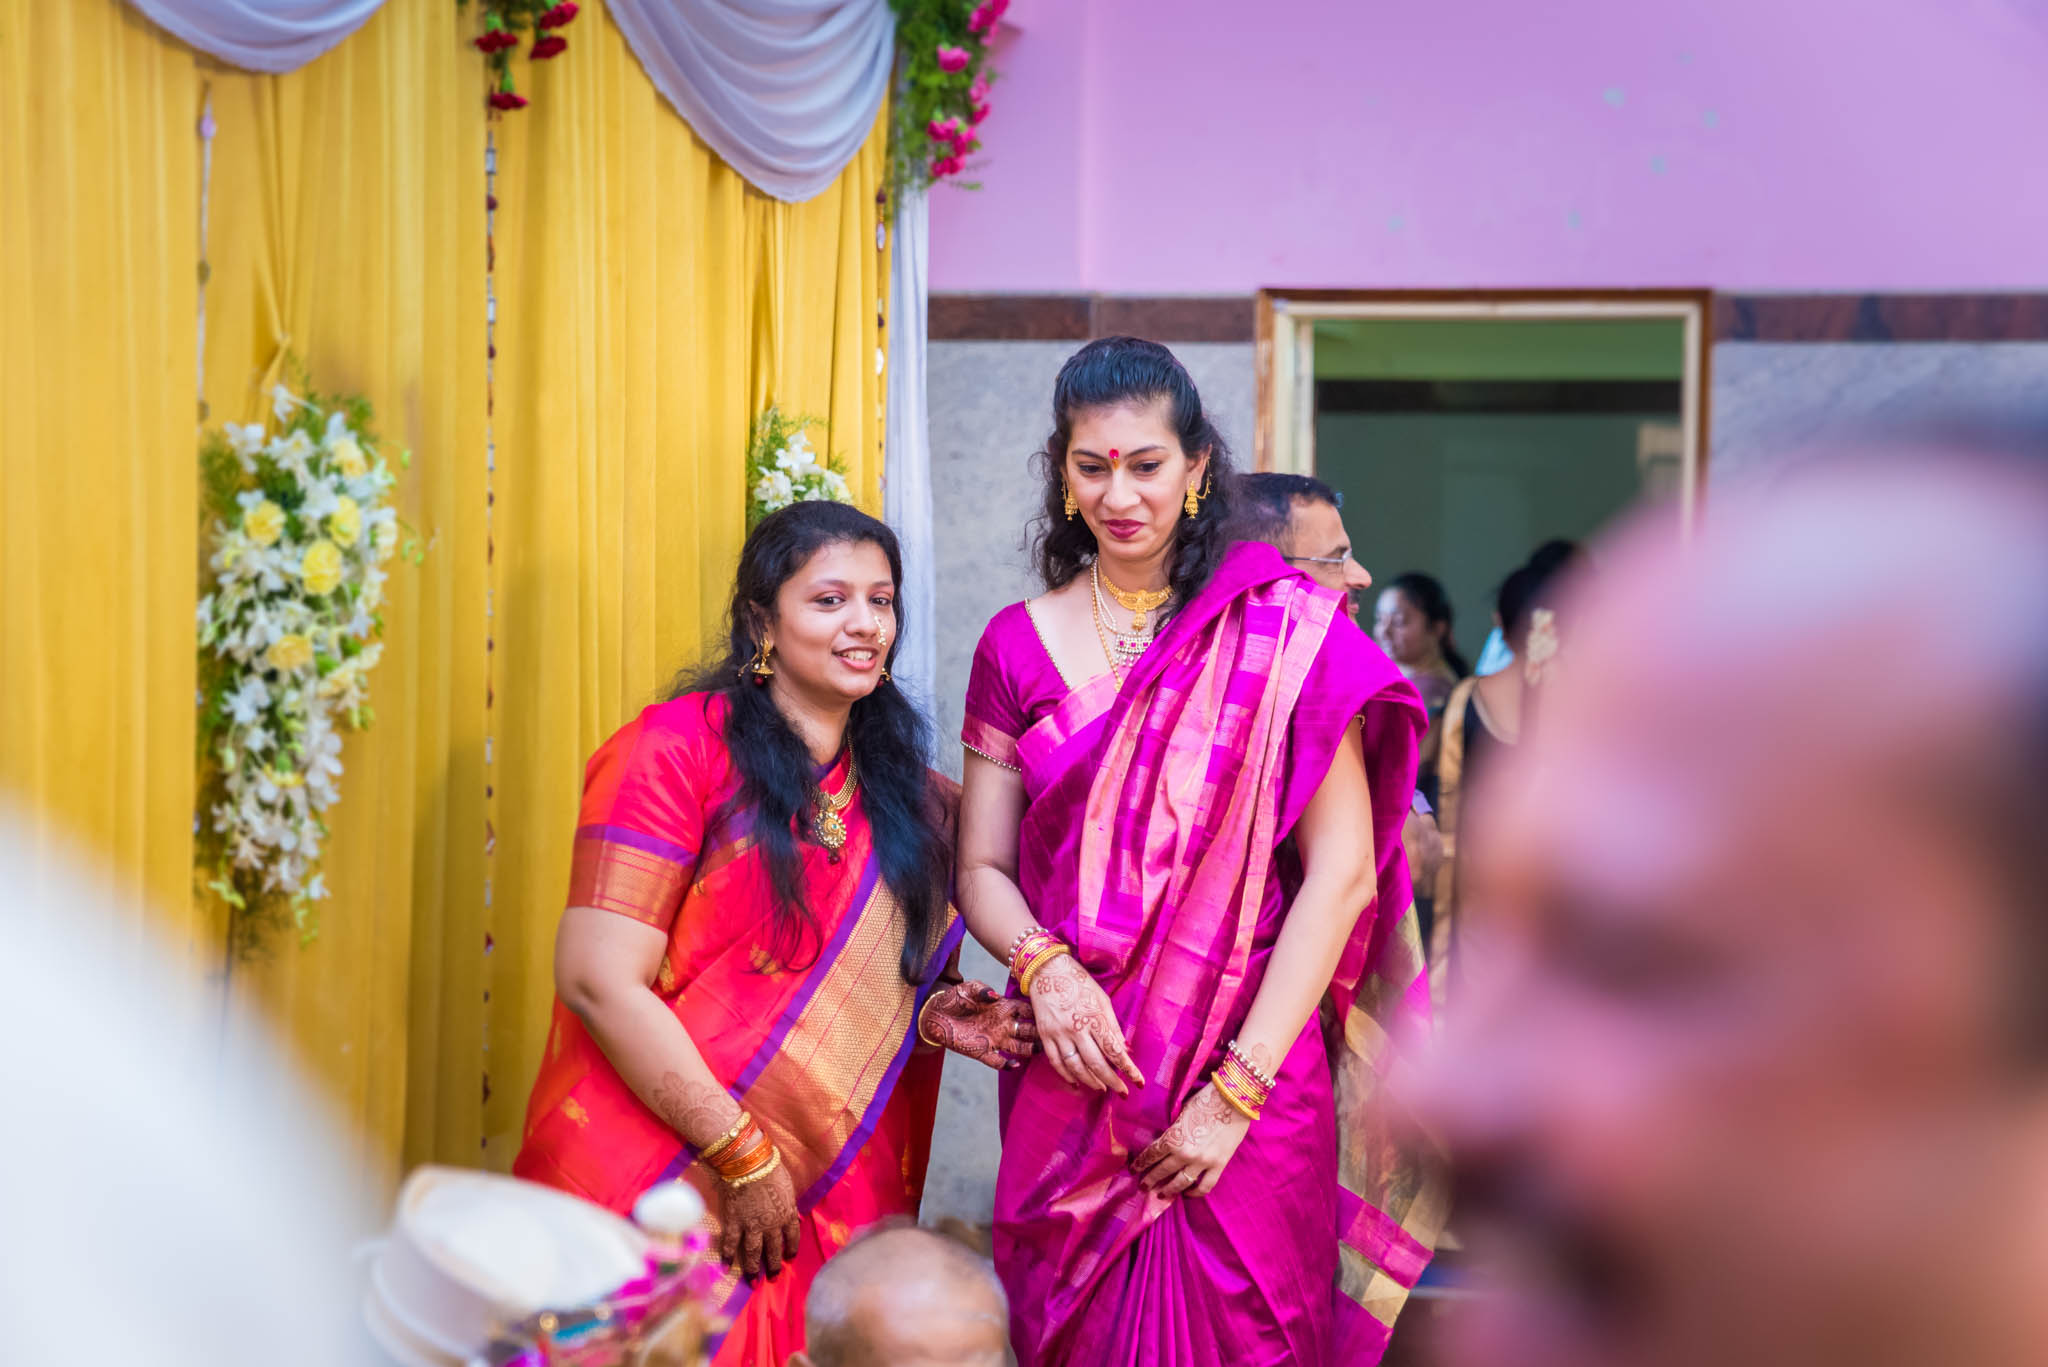 WhatKnot-Candid-Wedding-Photography-Mumbai-Bangalore-188